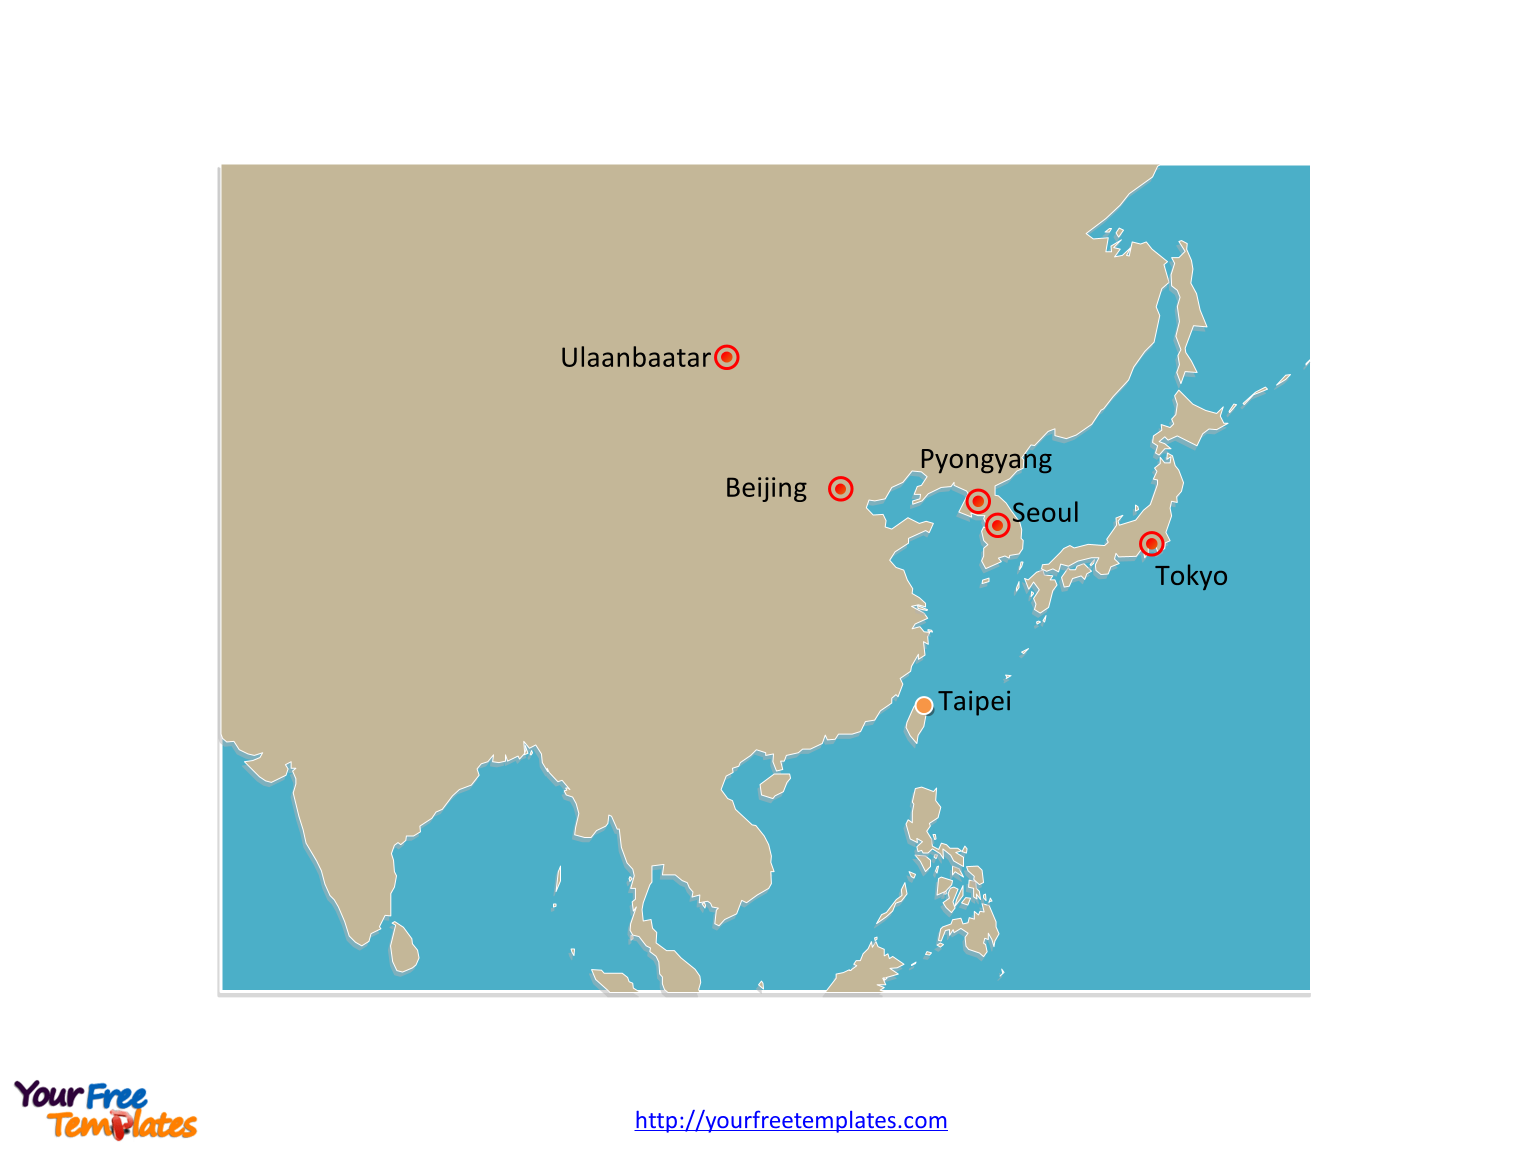 Map Of Asia Template.Free East Asia Map Template Free Powerpoint Templates